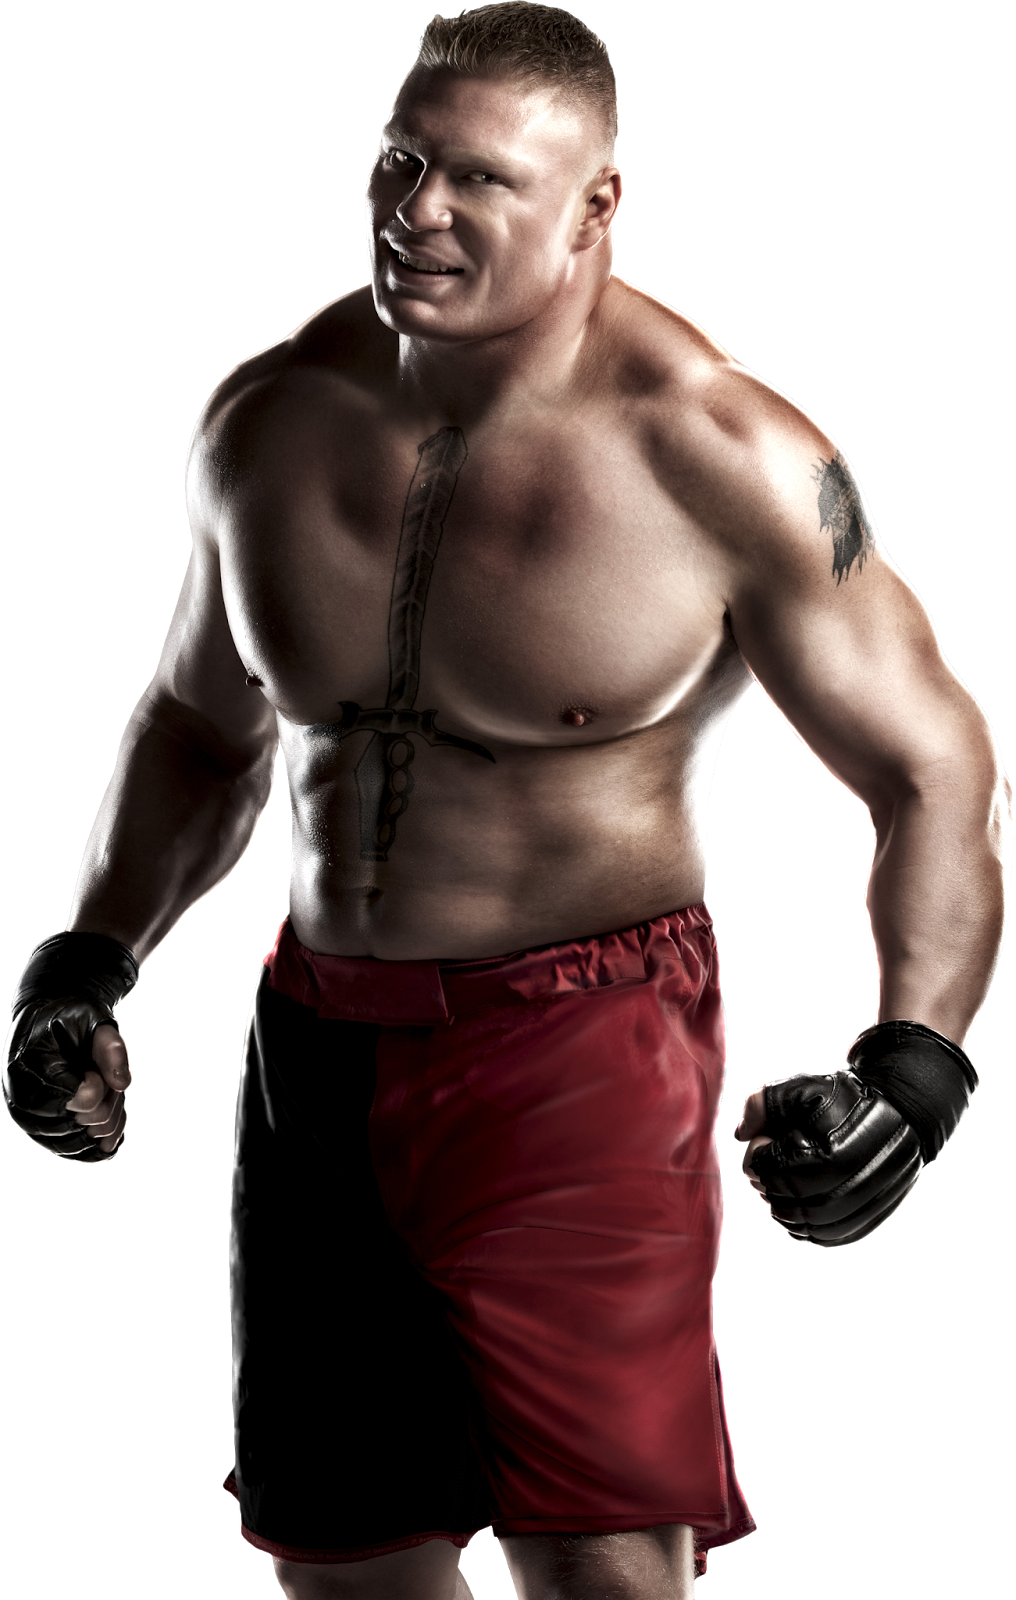 Brock Lesnar Hd Png - Brock Lesnar png HD | Hyp3r World